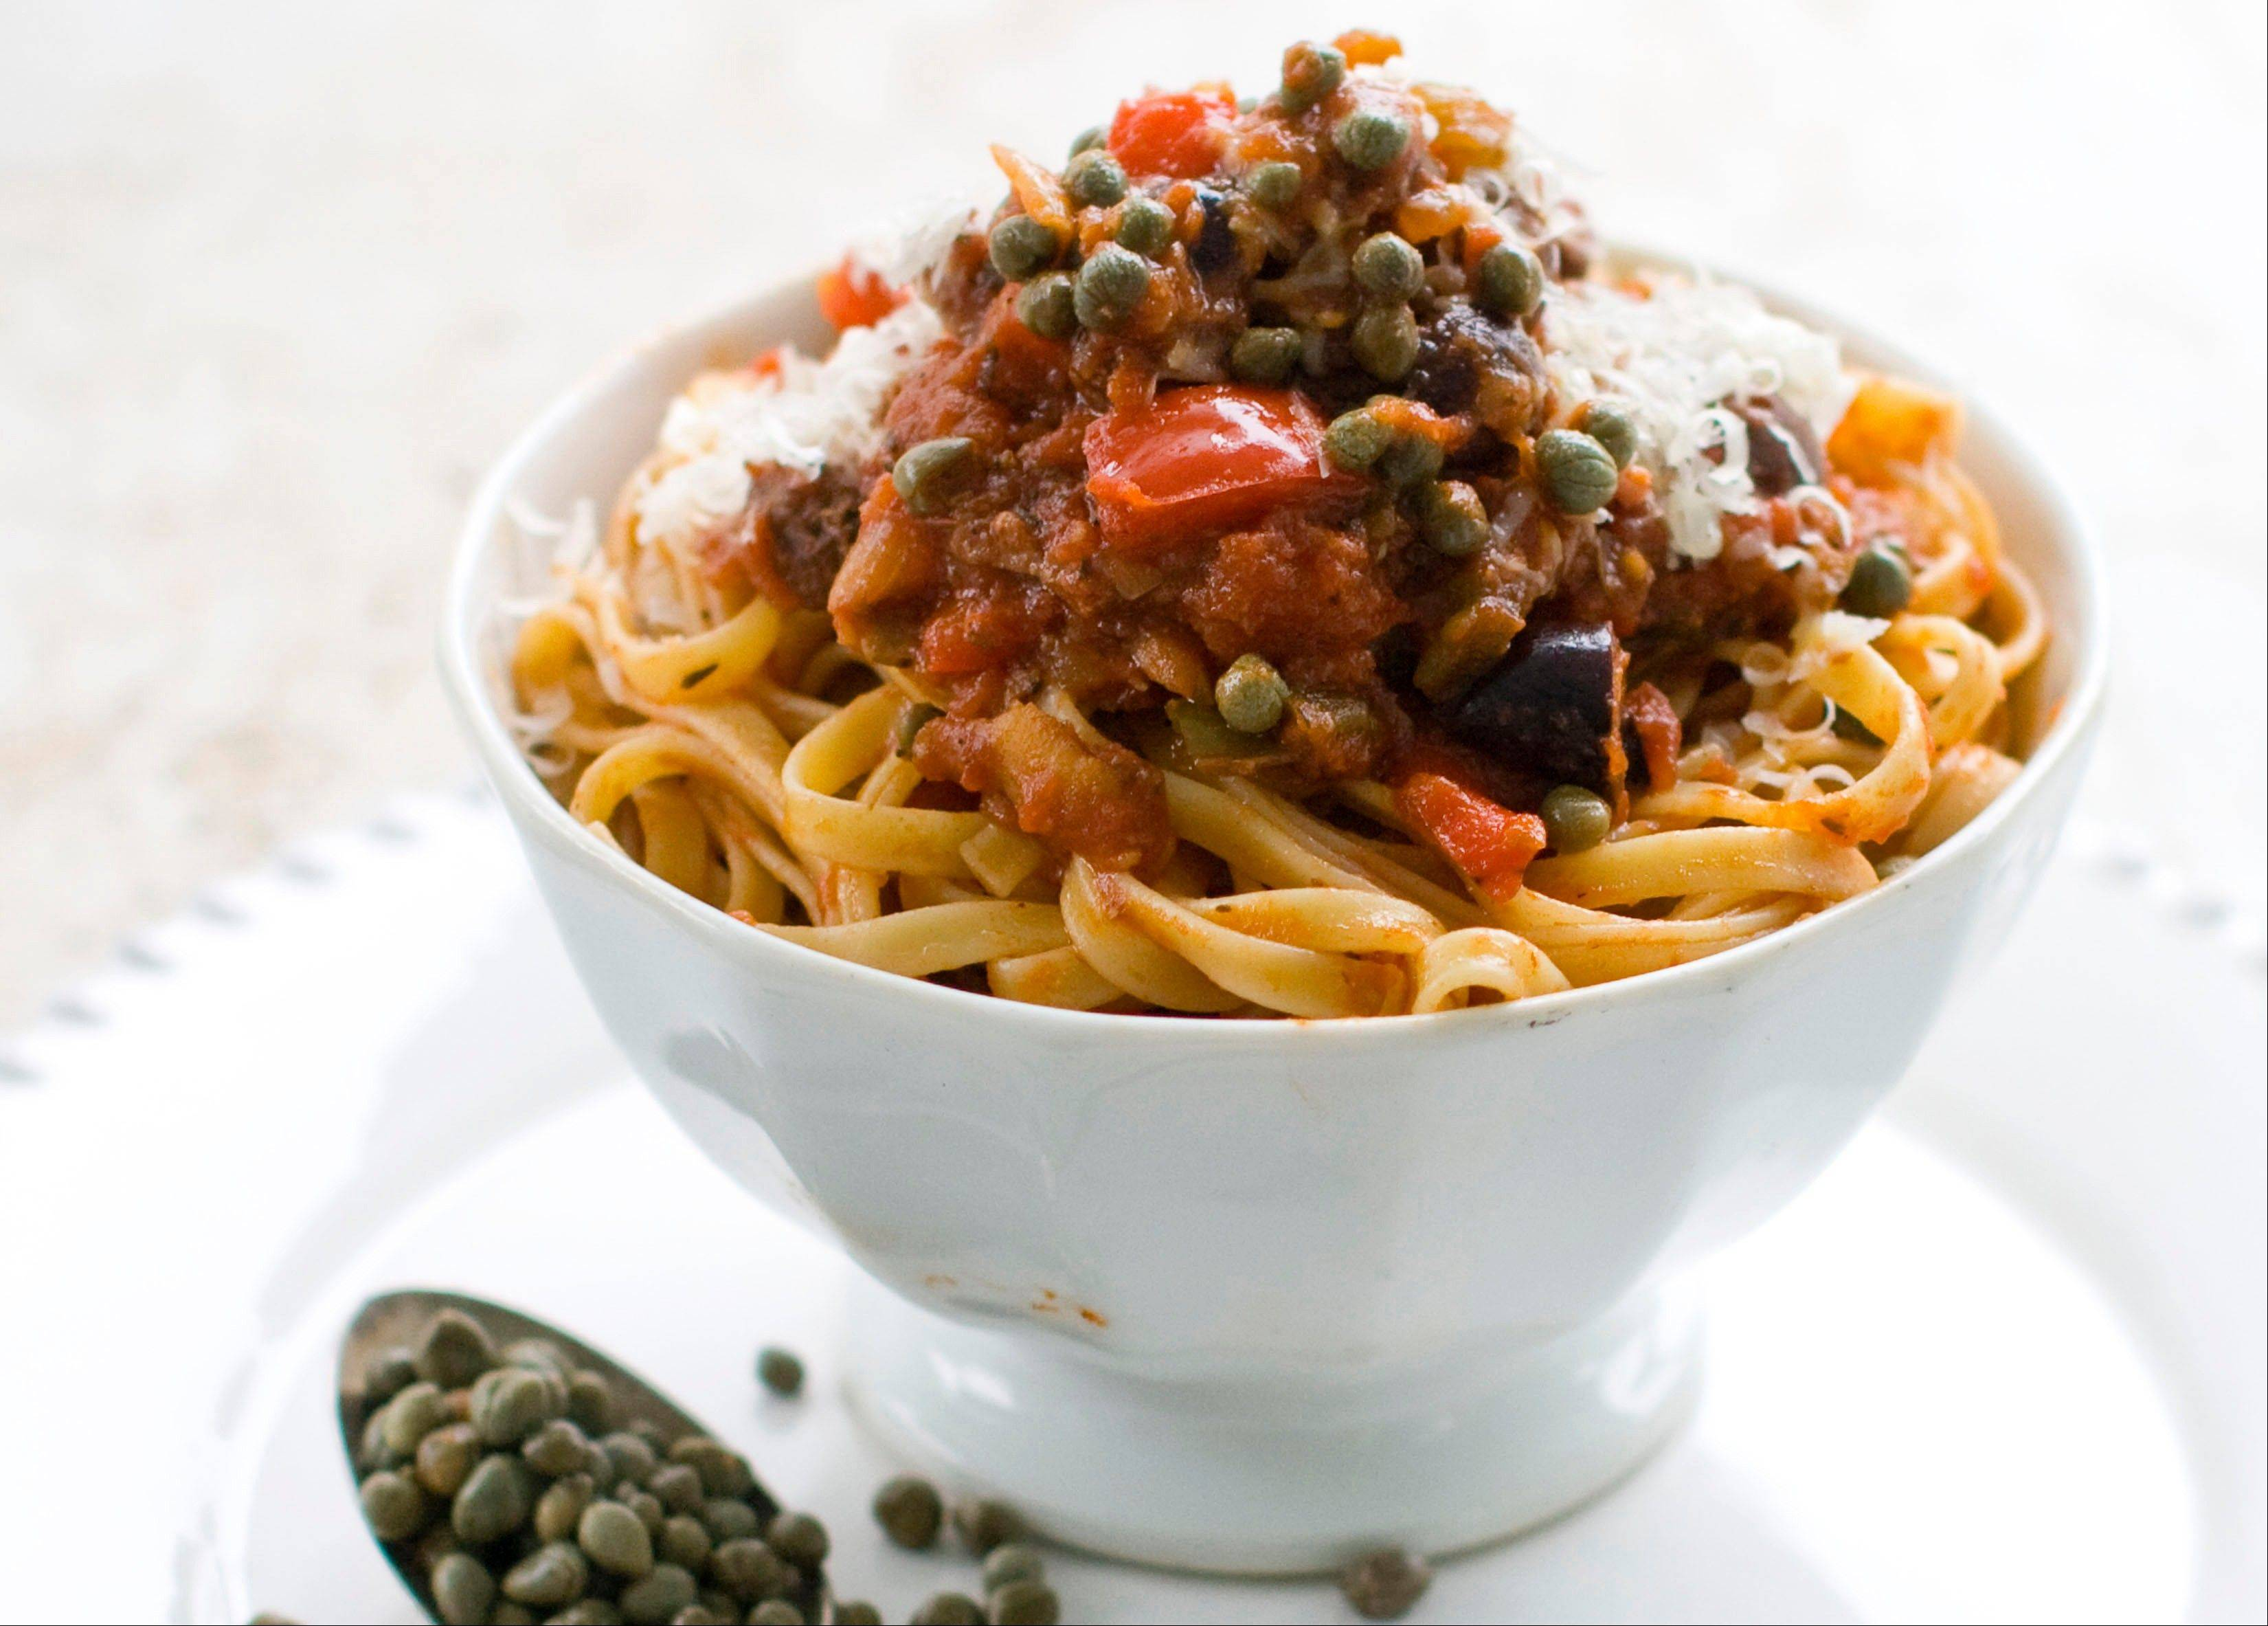 Capers star as a classic ingredient in puttanesca pasta sauce.